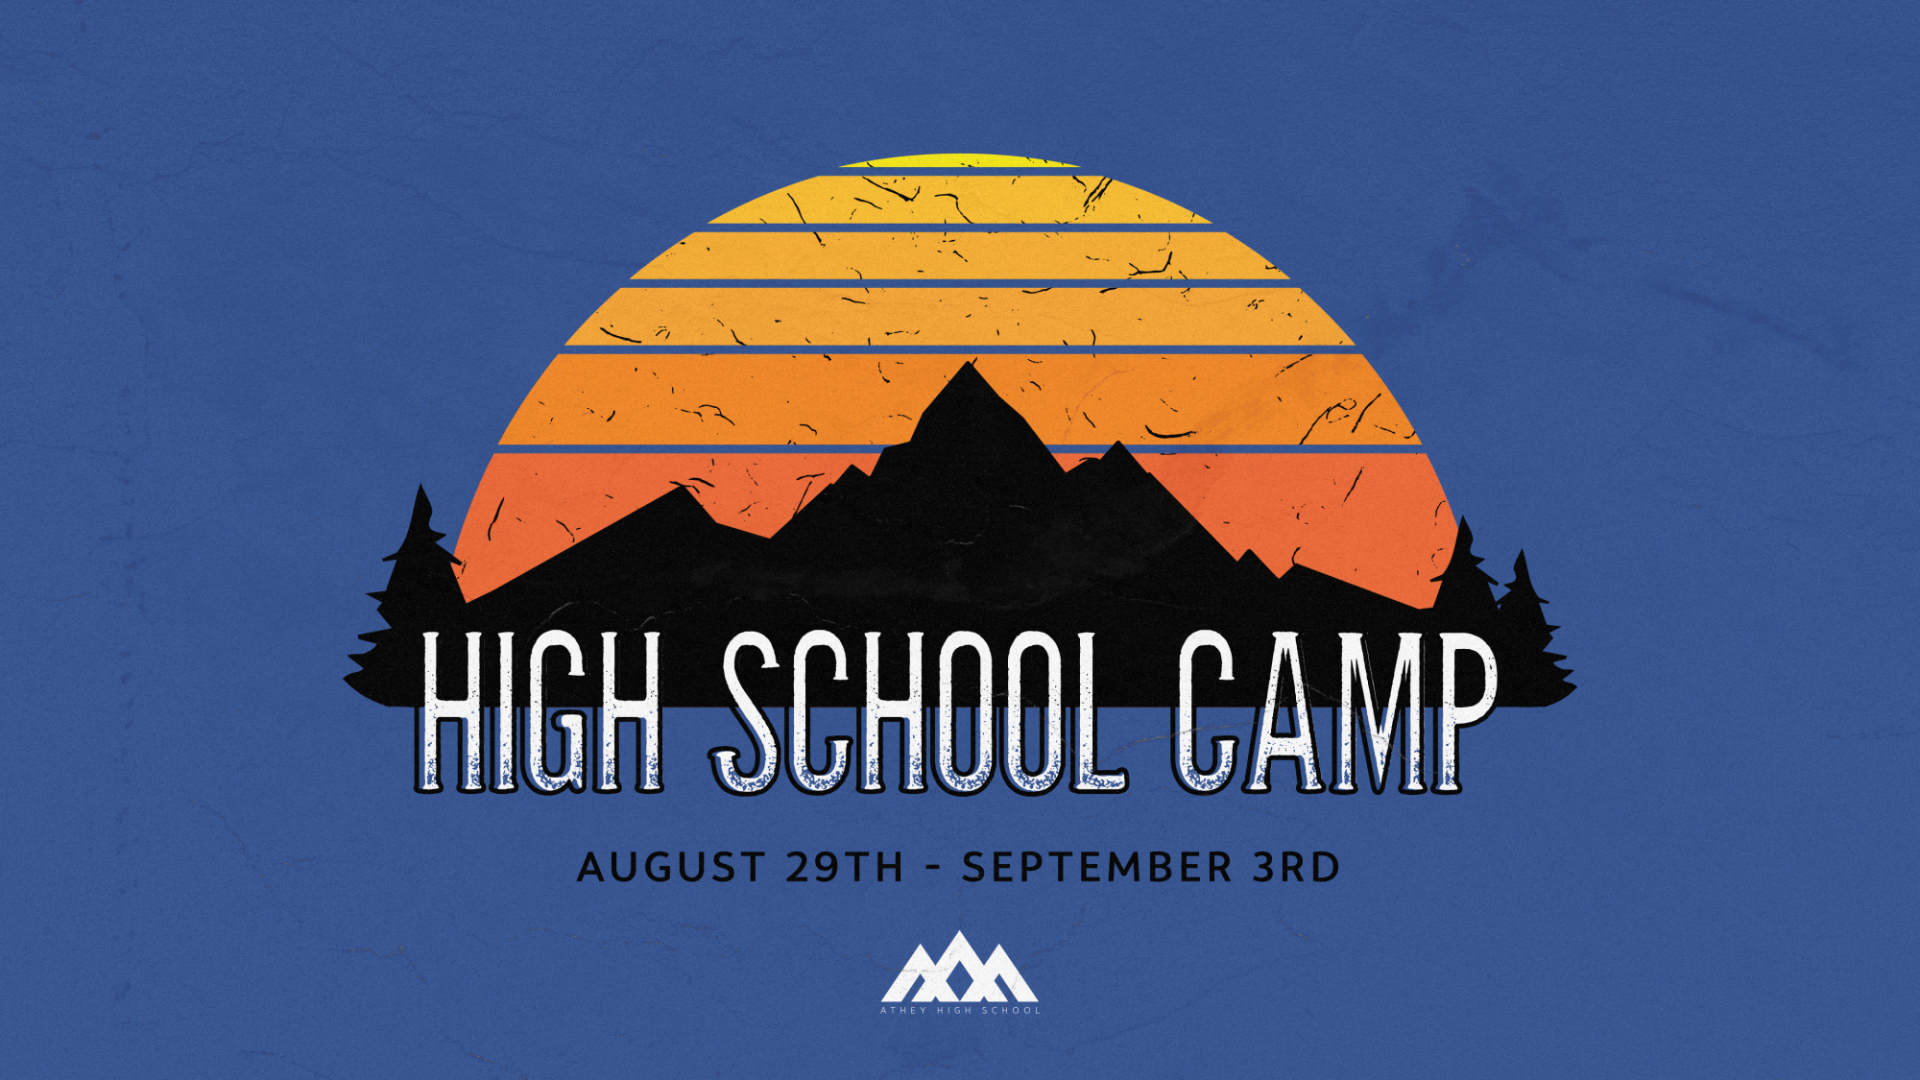 Poster for High School Camp